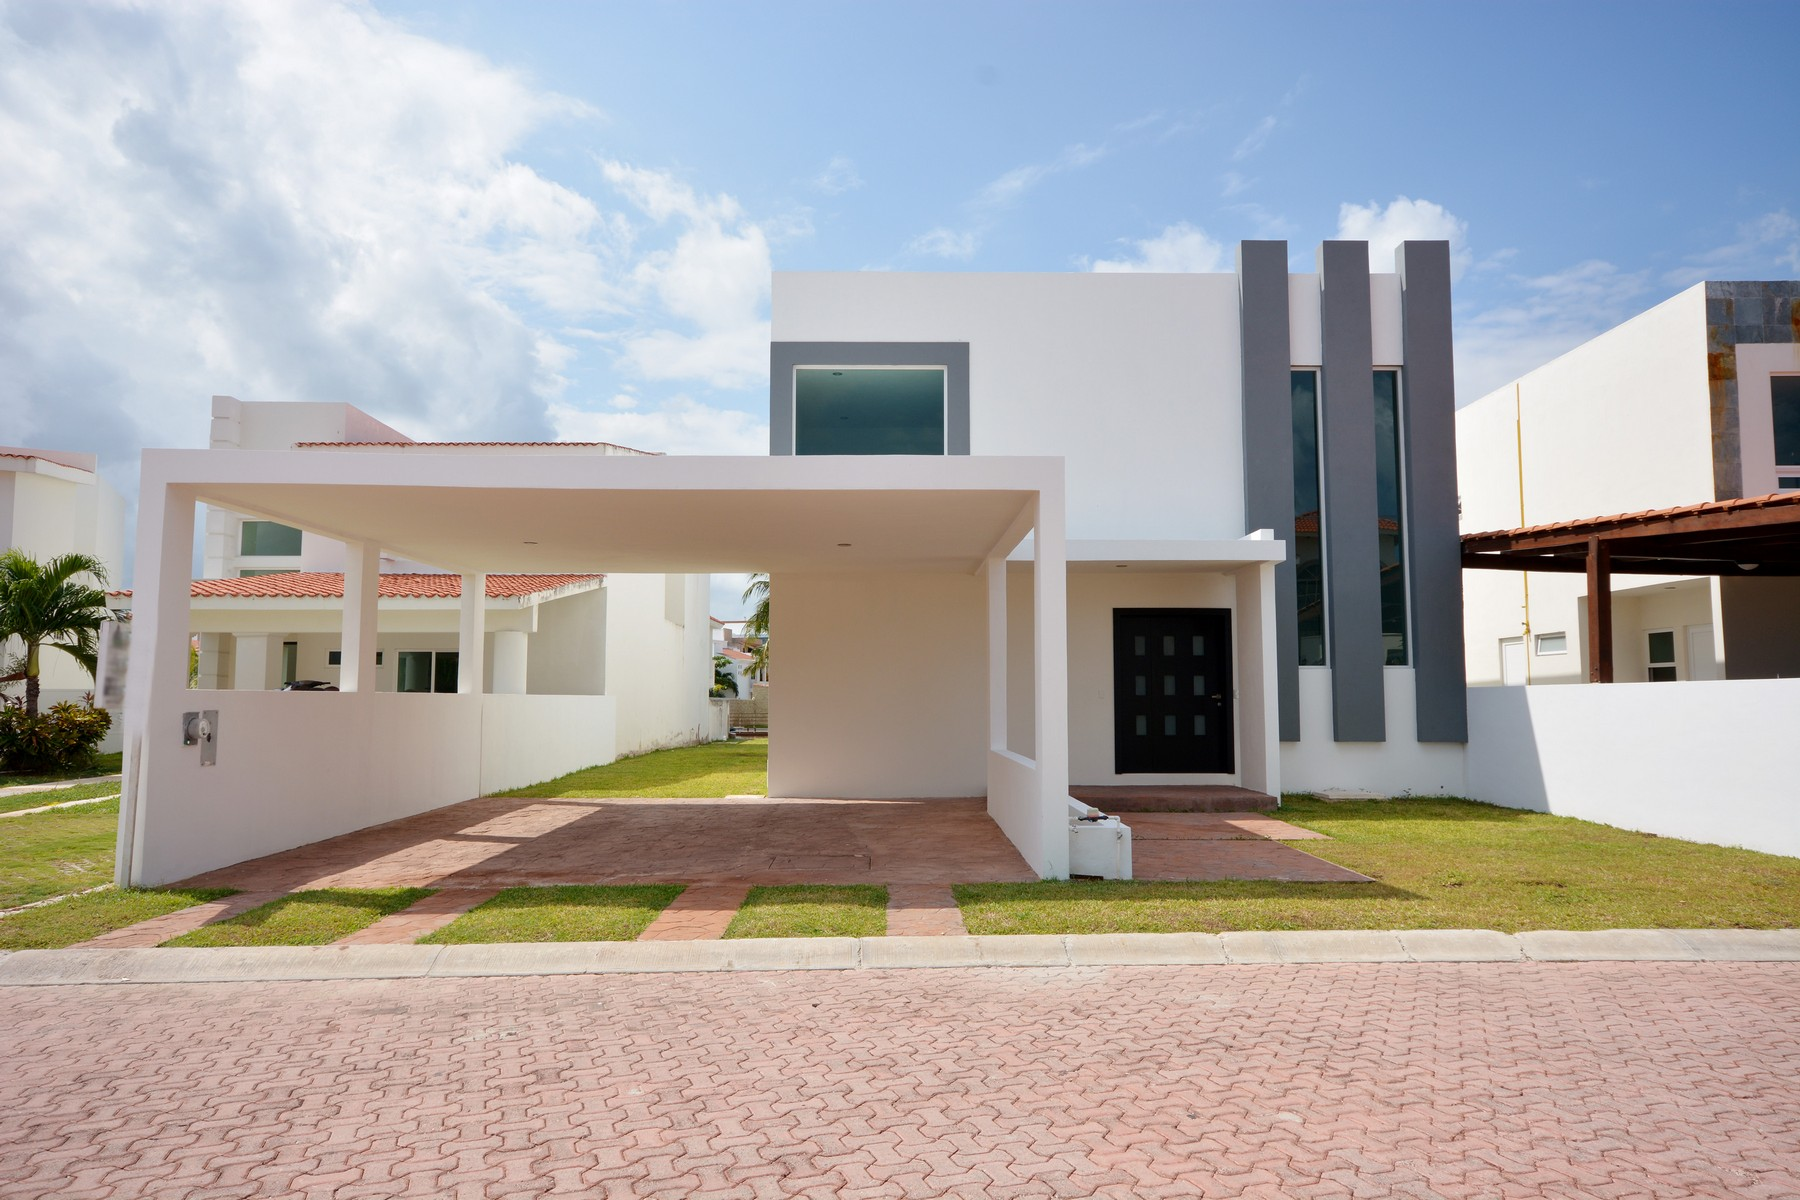 Single Family Home for Sale at CASA CONTEMPO Cancun, Quintana Roo Mexico